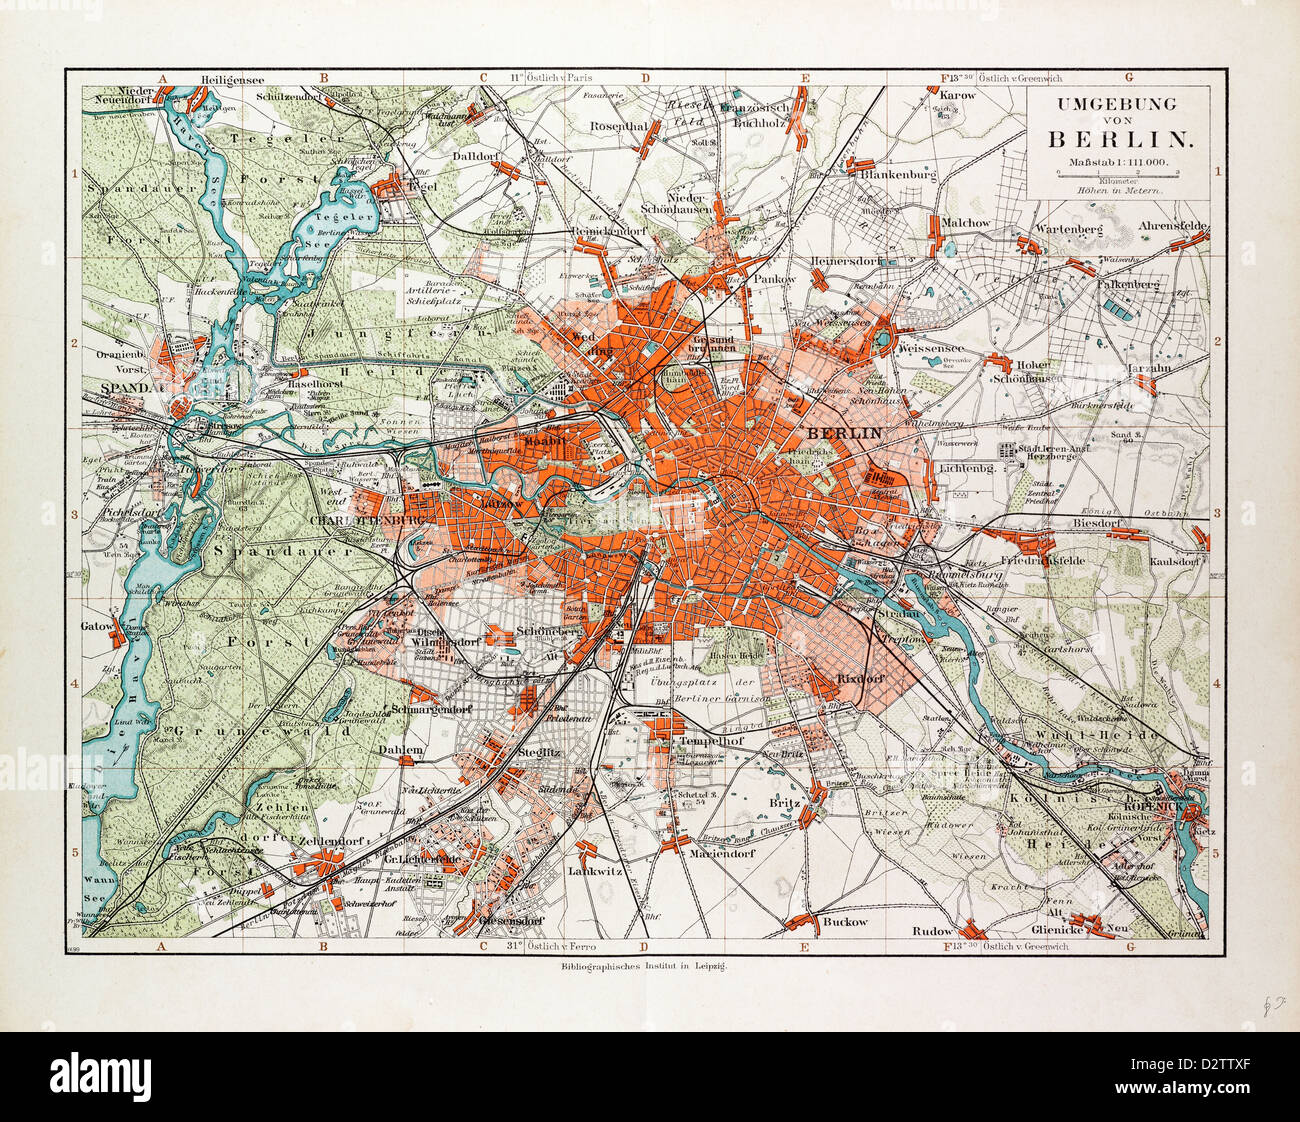 Map Of Berlin And The Surrounding Area Germany 1899 Stock Photo